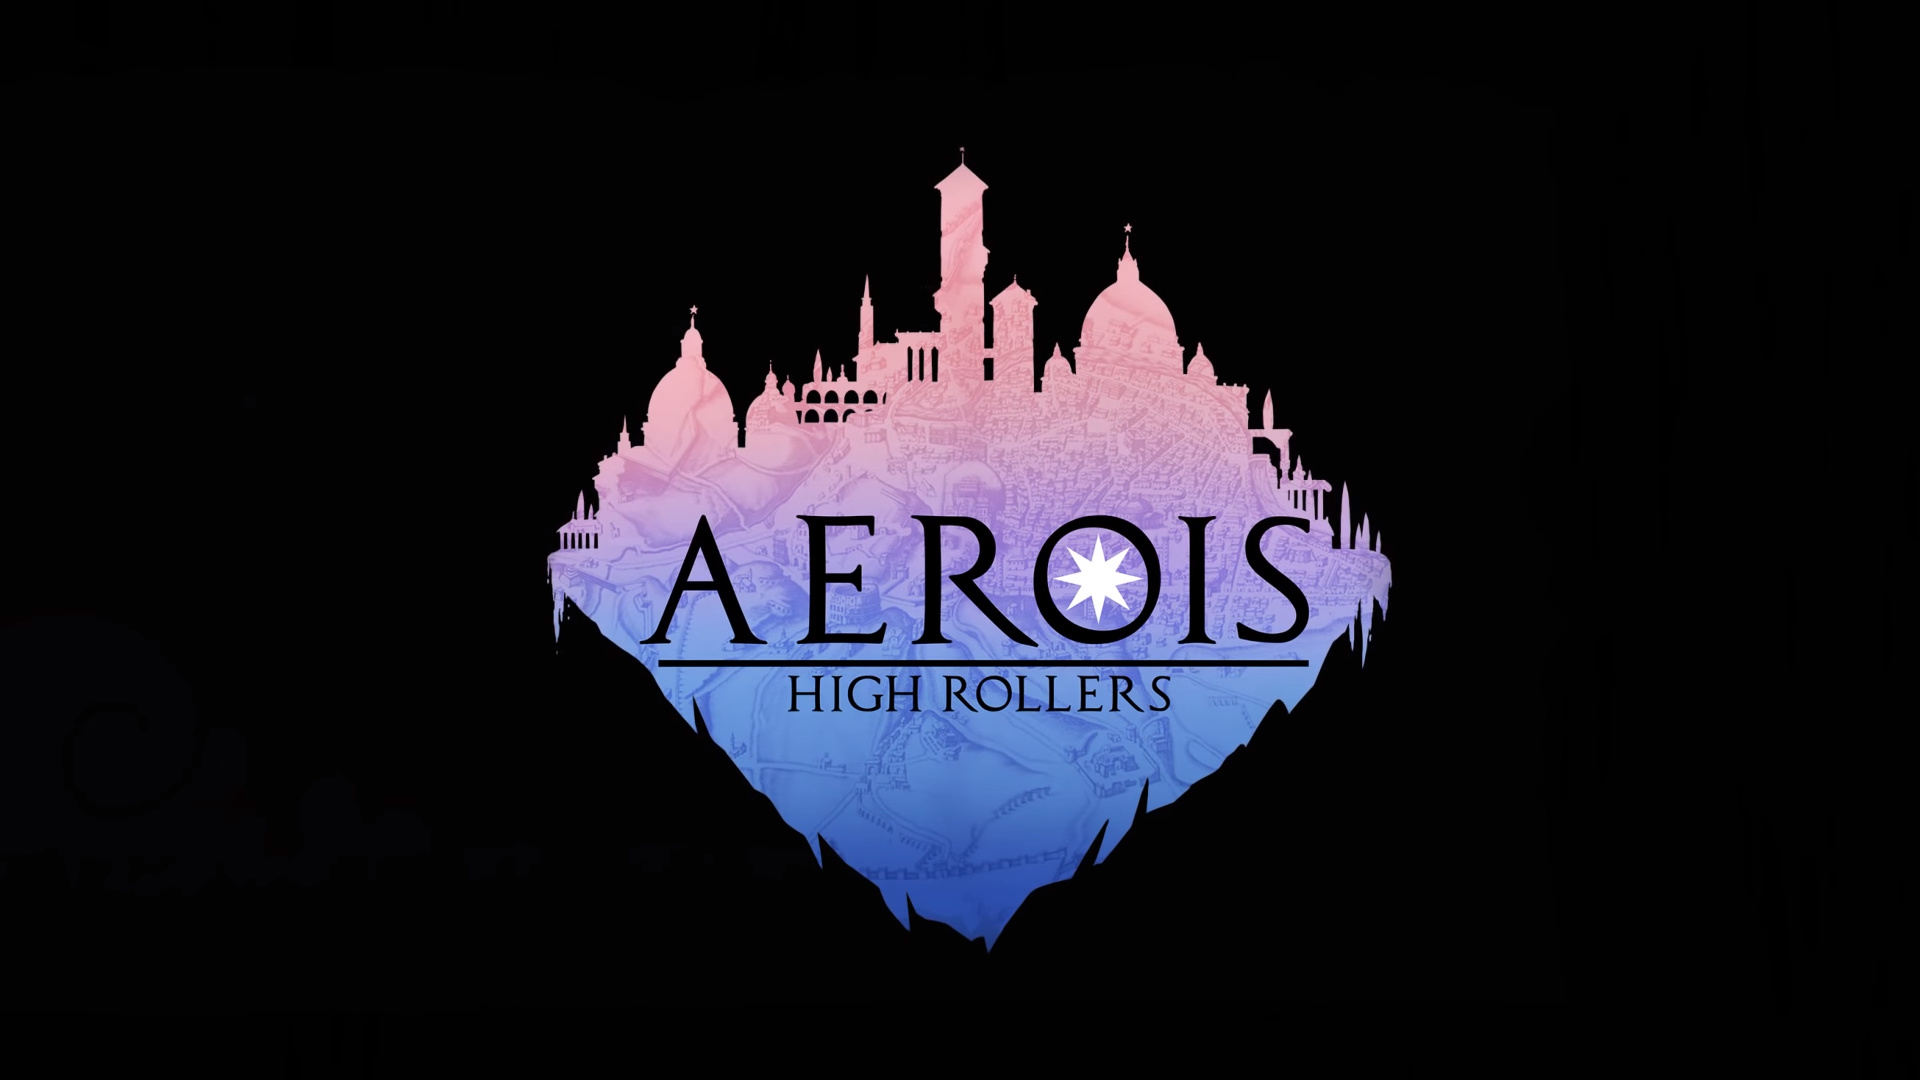 Weekly Blog July 22nd, 2018: High Rollers D&D – Allen_The_Writer